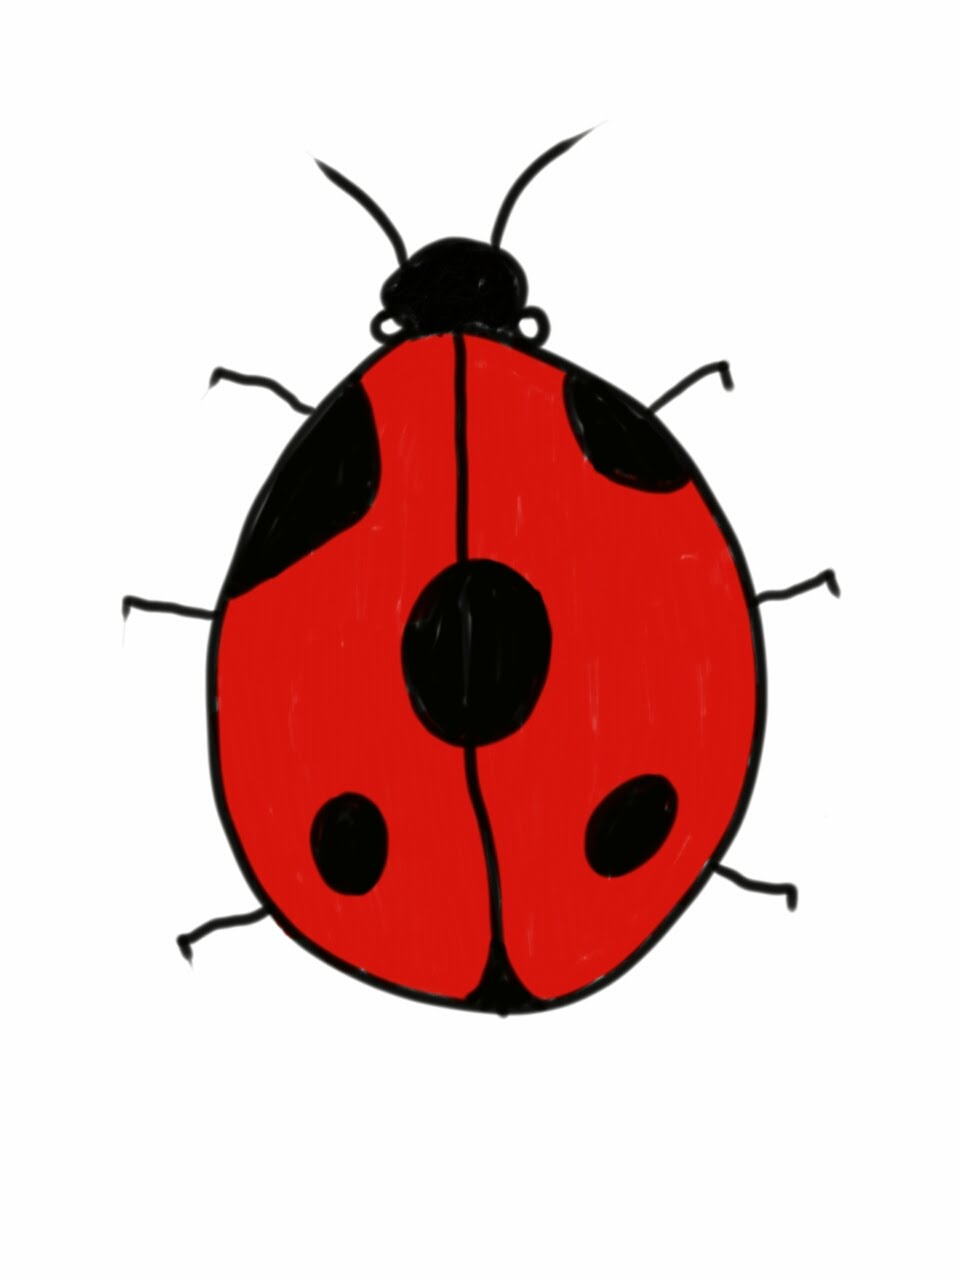 960x1280 How To Draw And Colour A Basic Ladybird (Ladybug)